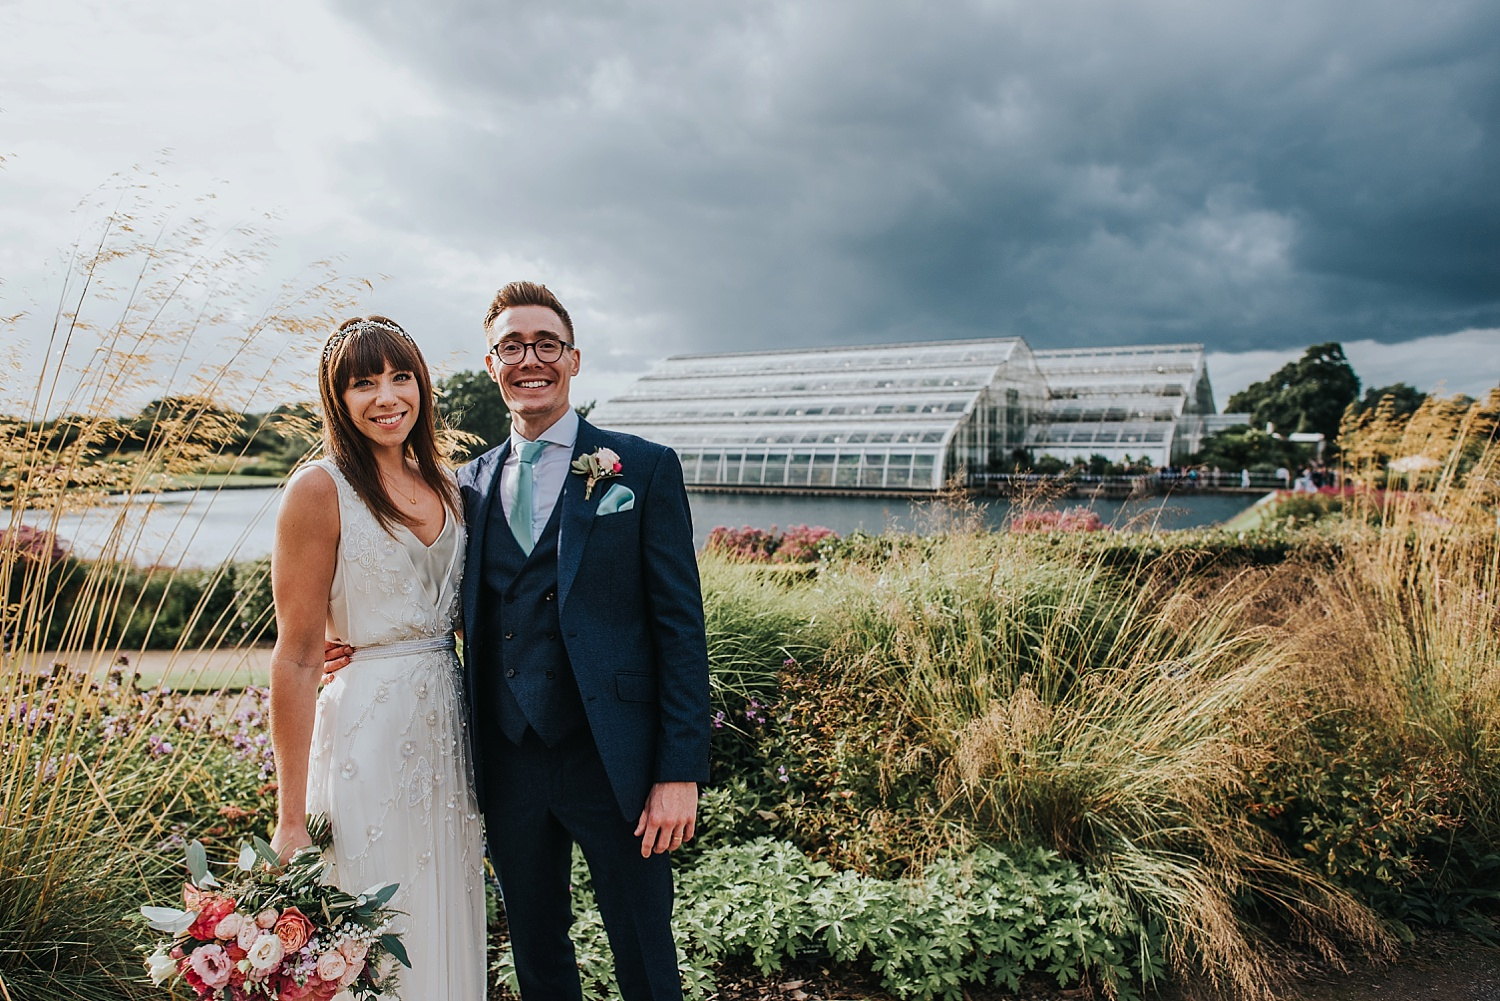 bride and groom standing by glasshouse RHS Wisley